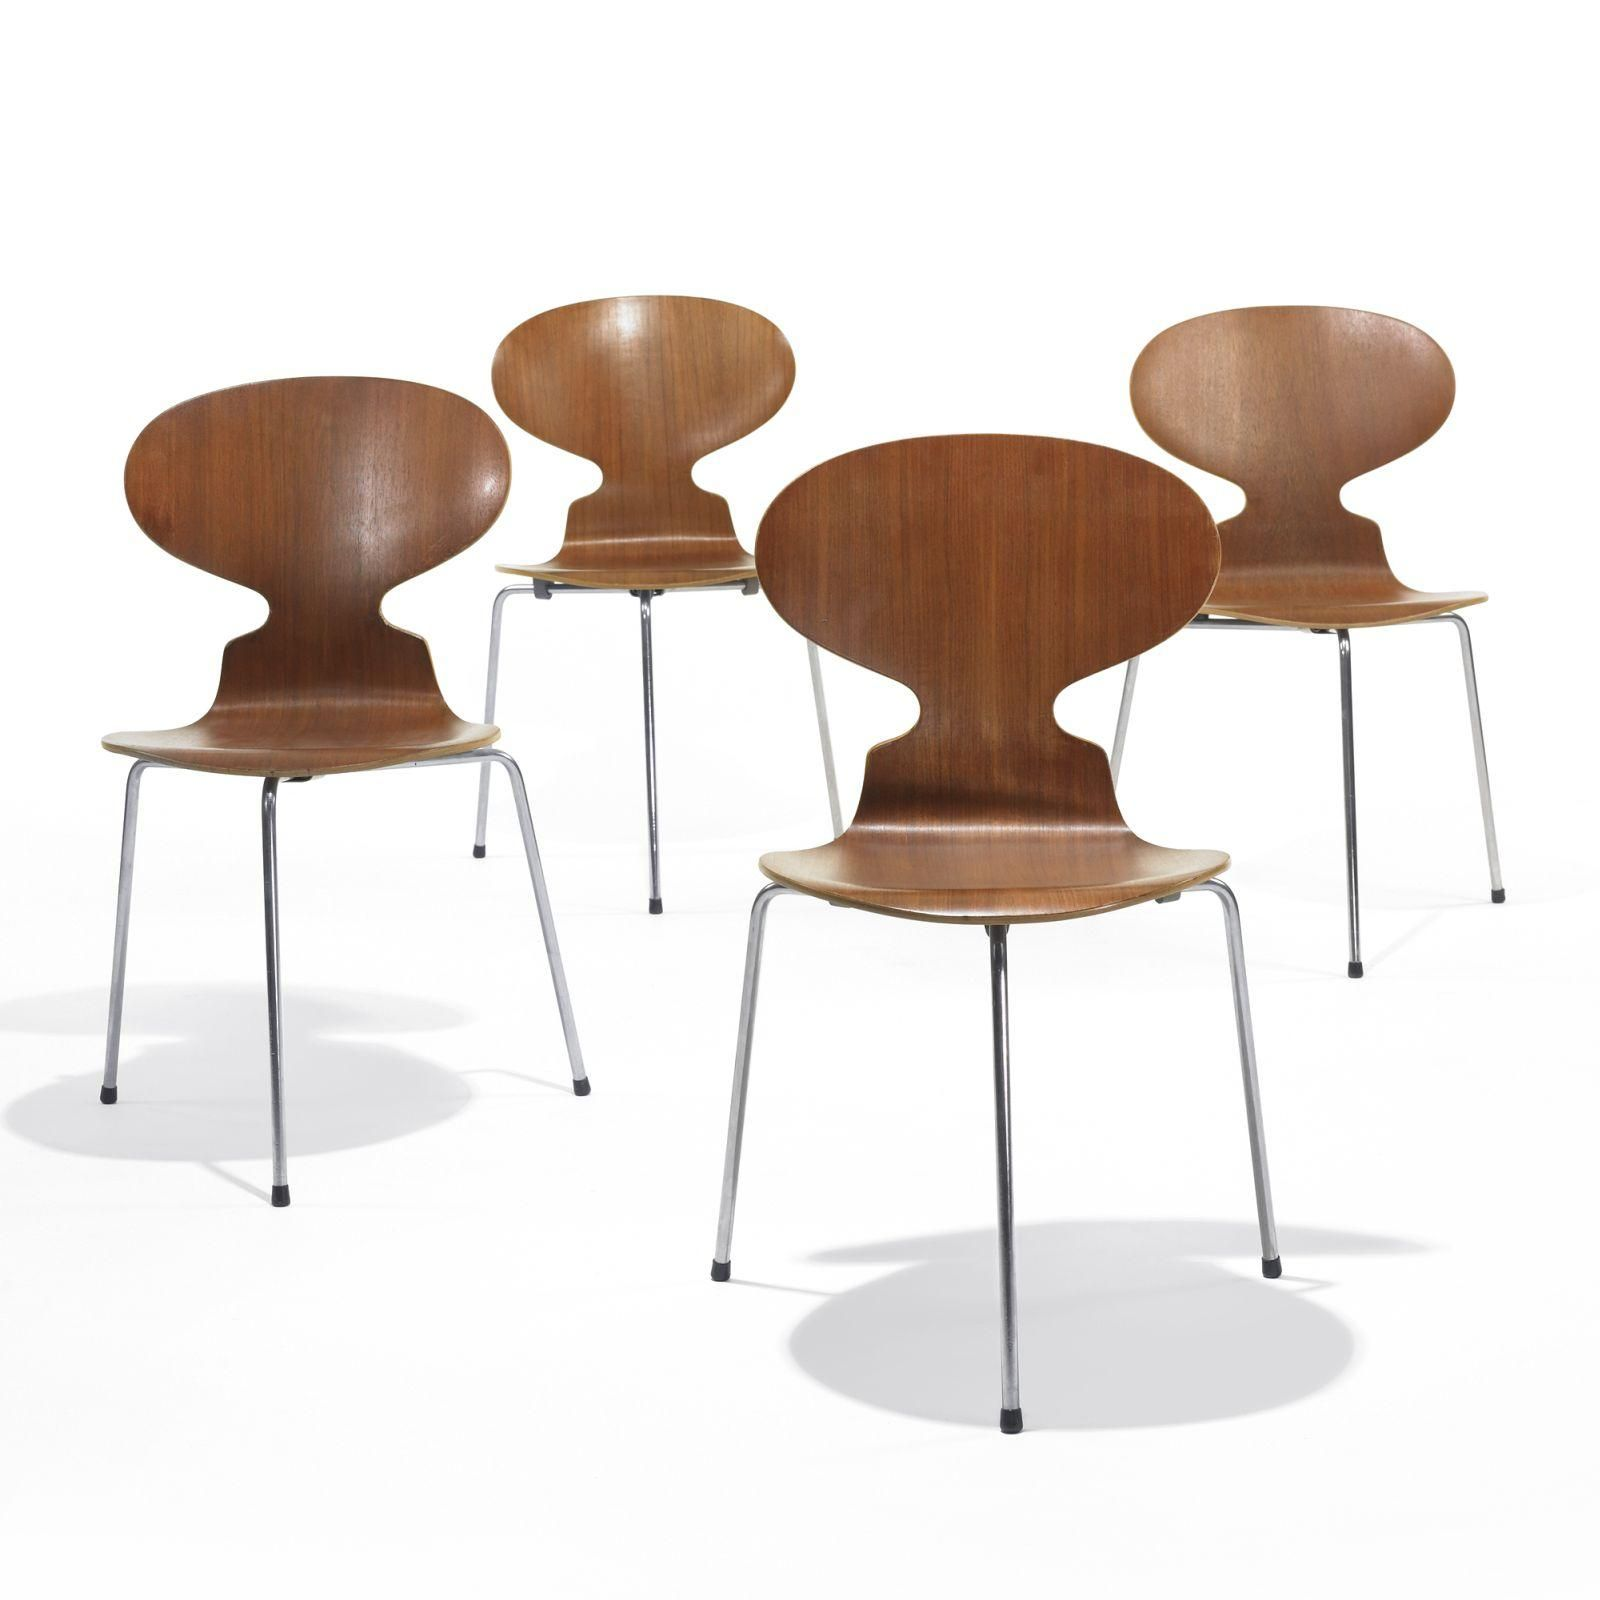 Ant chair アントチェア